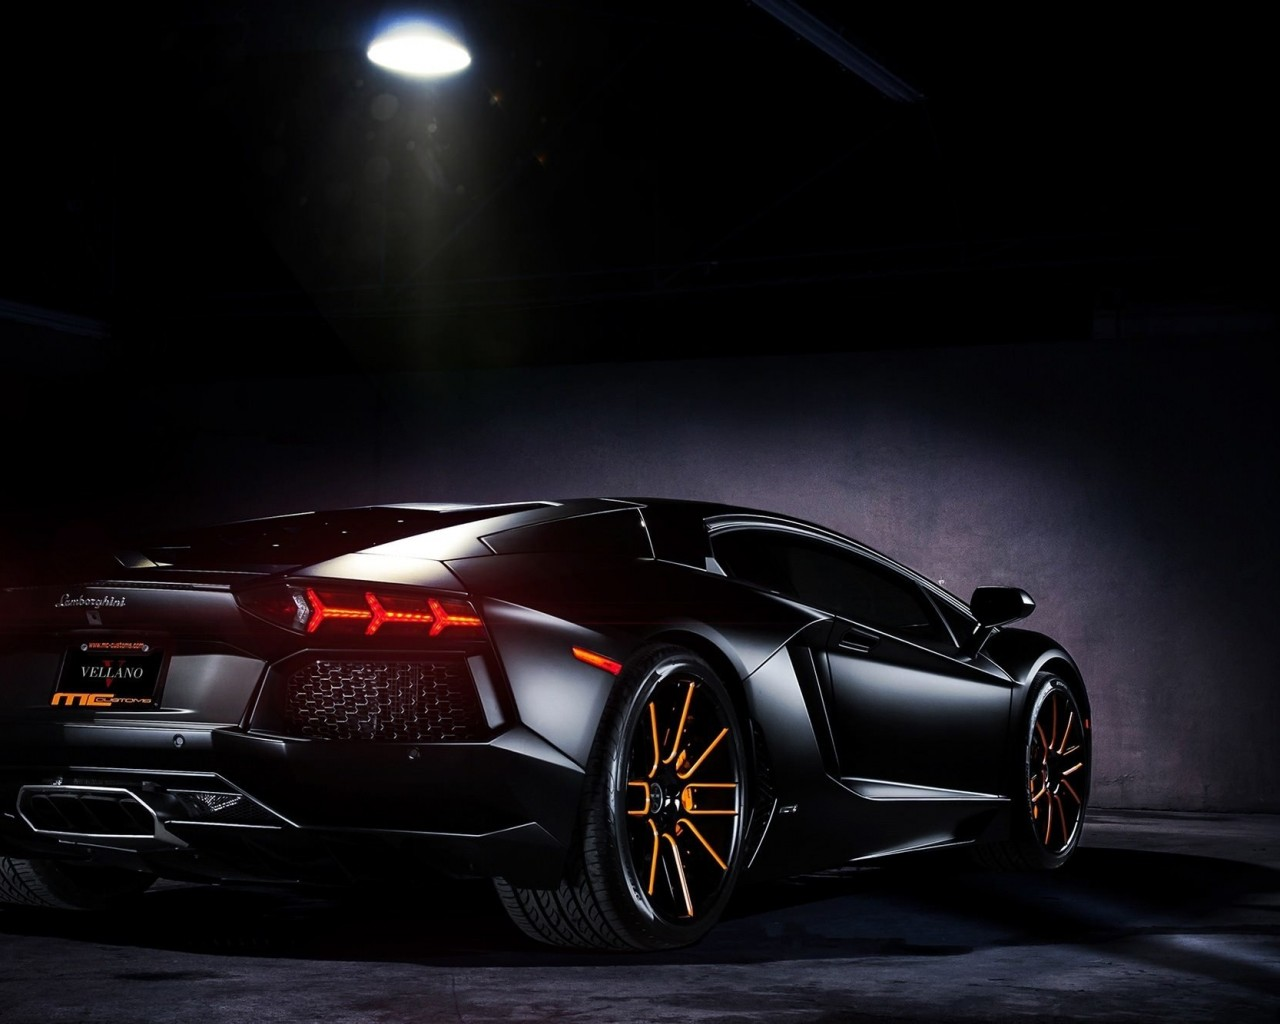 Matte Black Lamborghini Aventador on Vellano wheels Wallpaper for Desktop 1280x1024